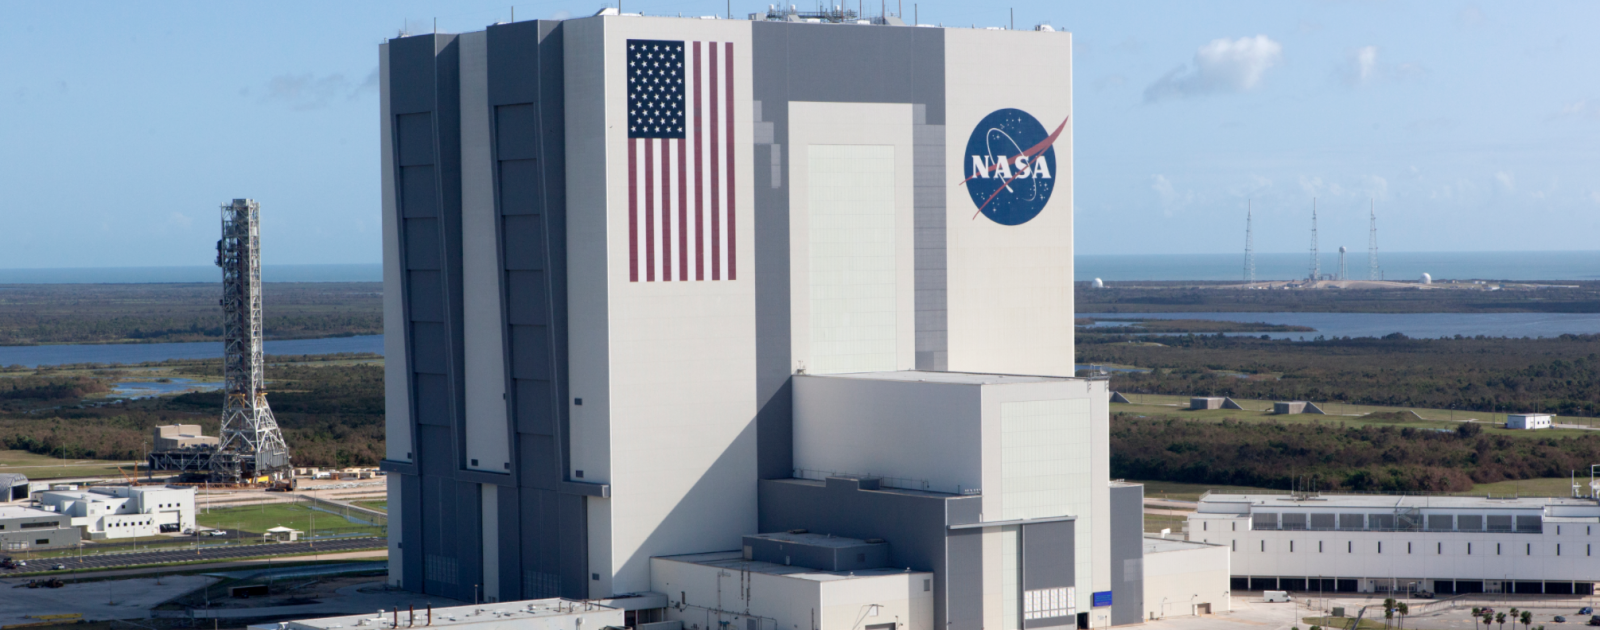 Launch Facilities Spared Major Damage From Hurricane Irma